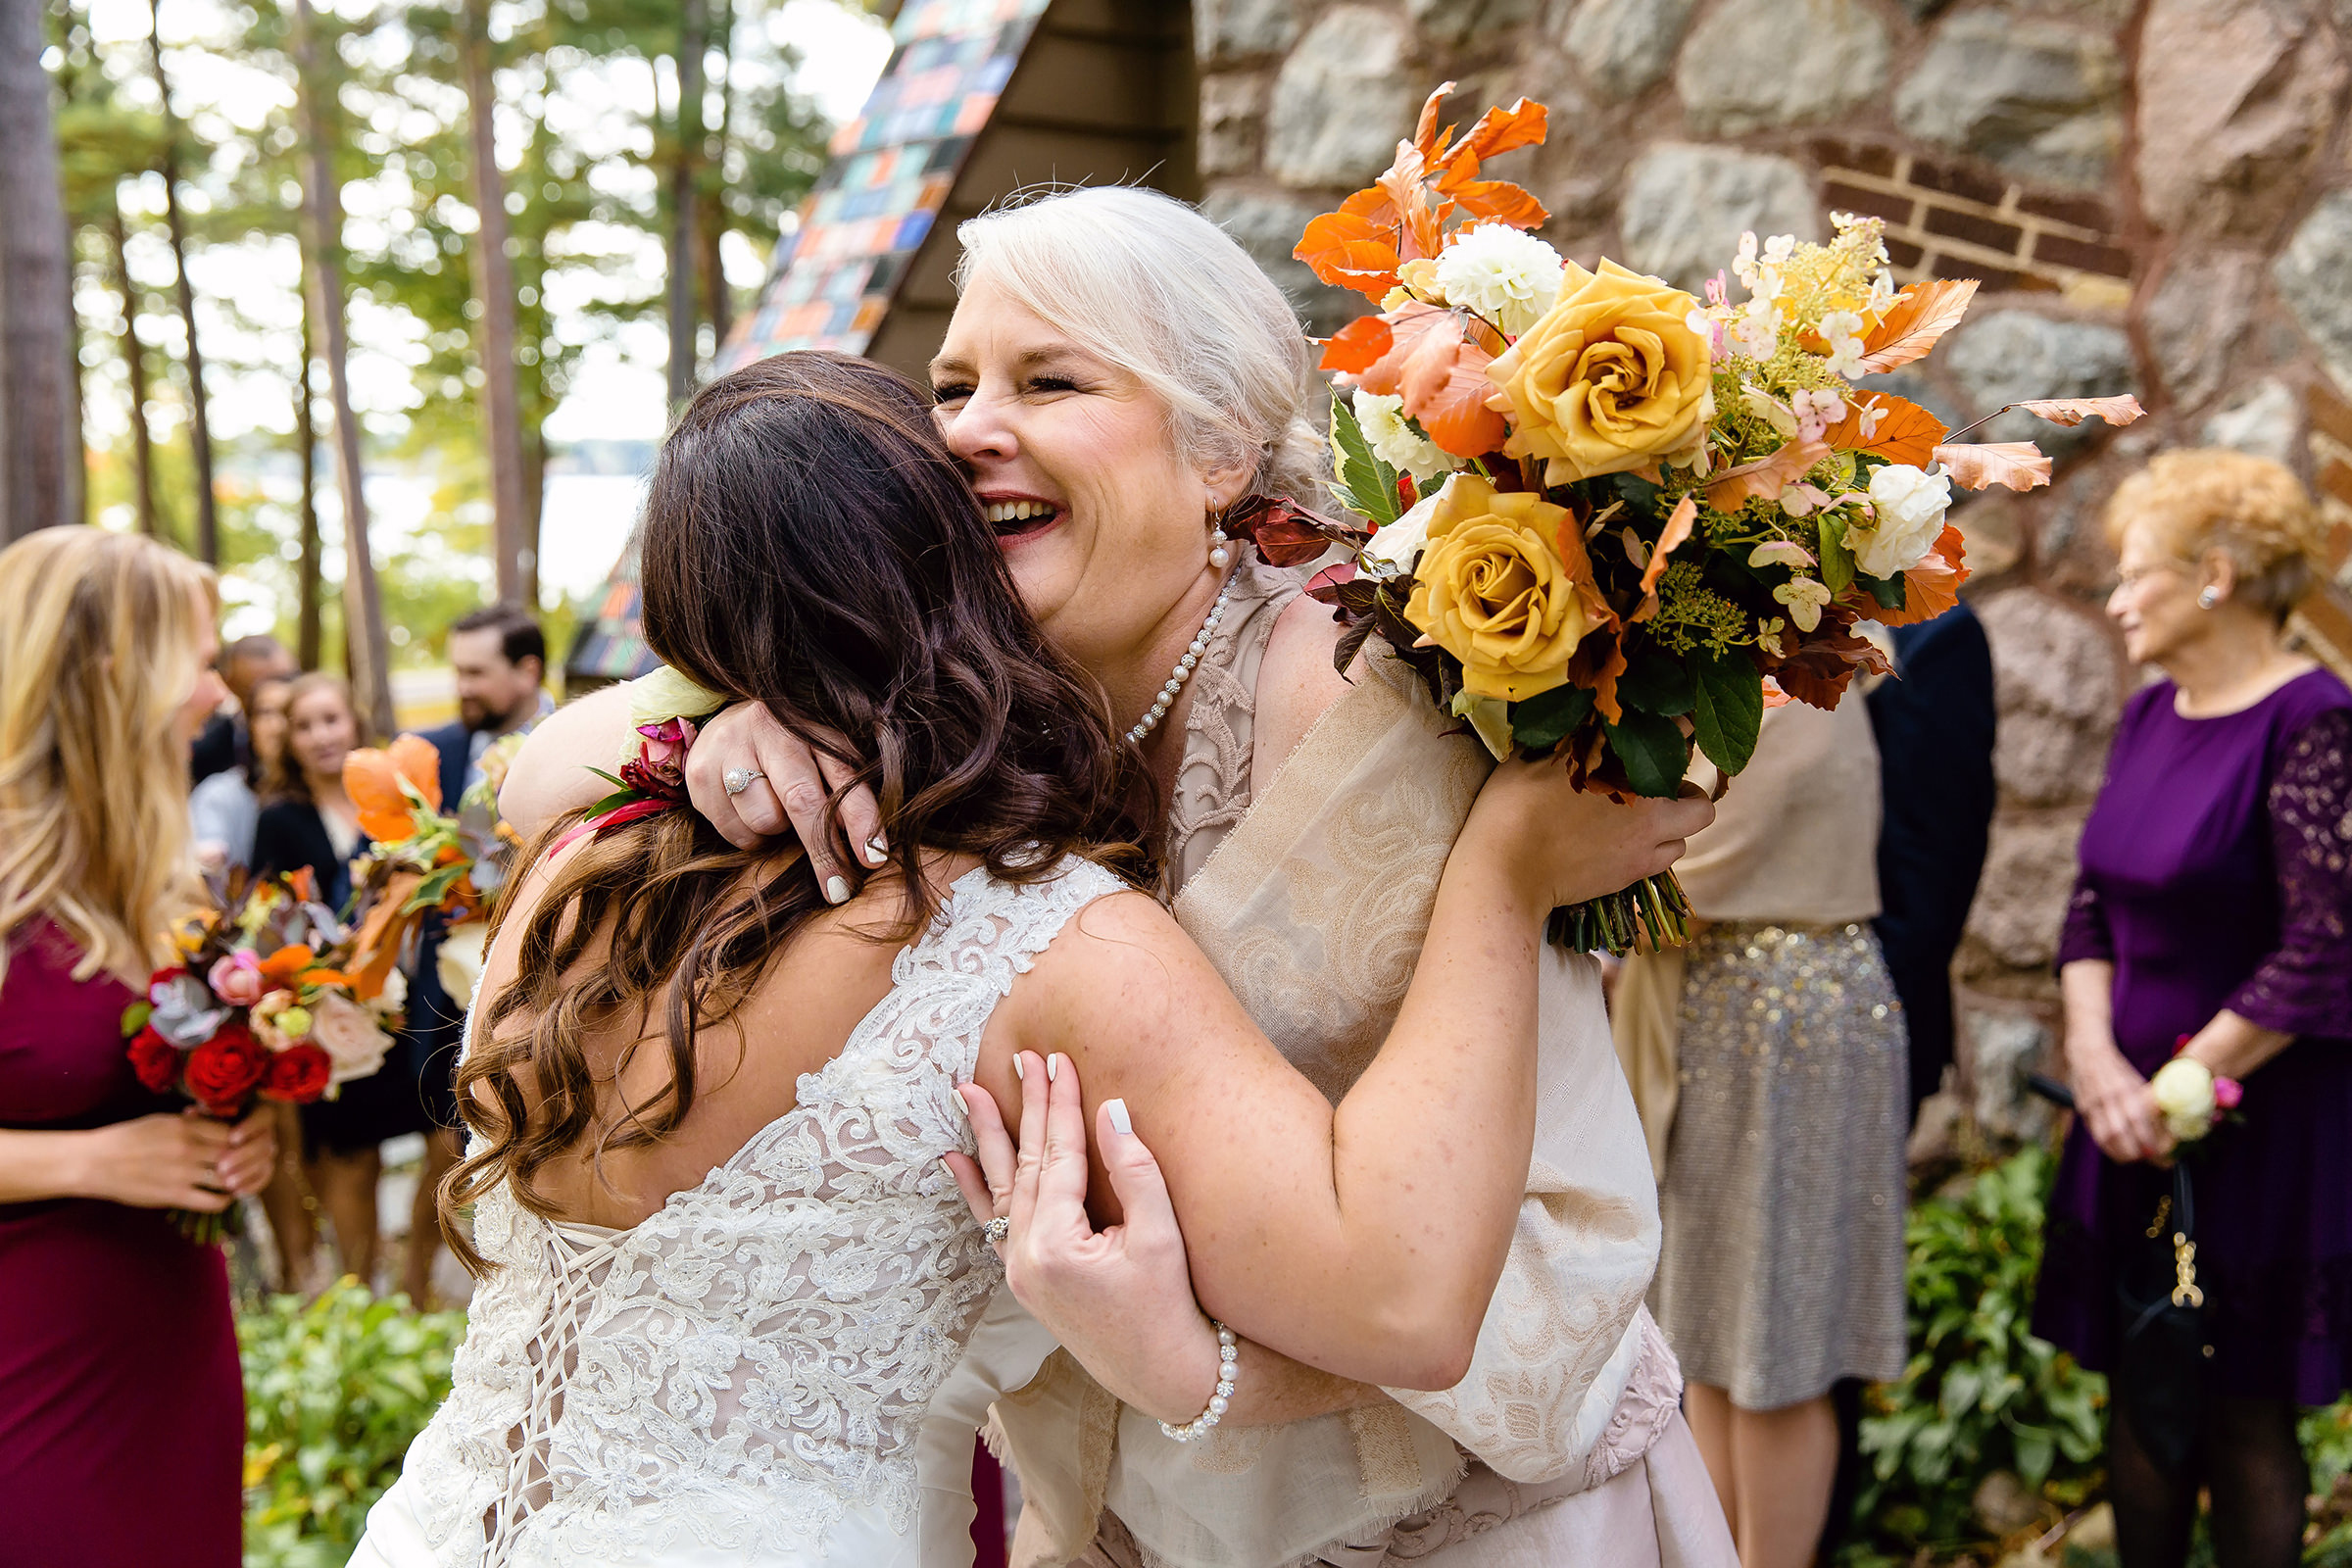 Big hug for the bride - photo by Rayan Anastor Photography